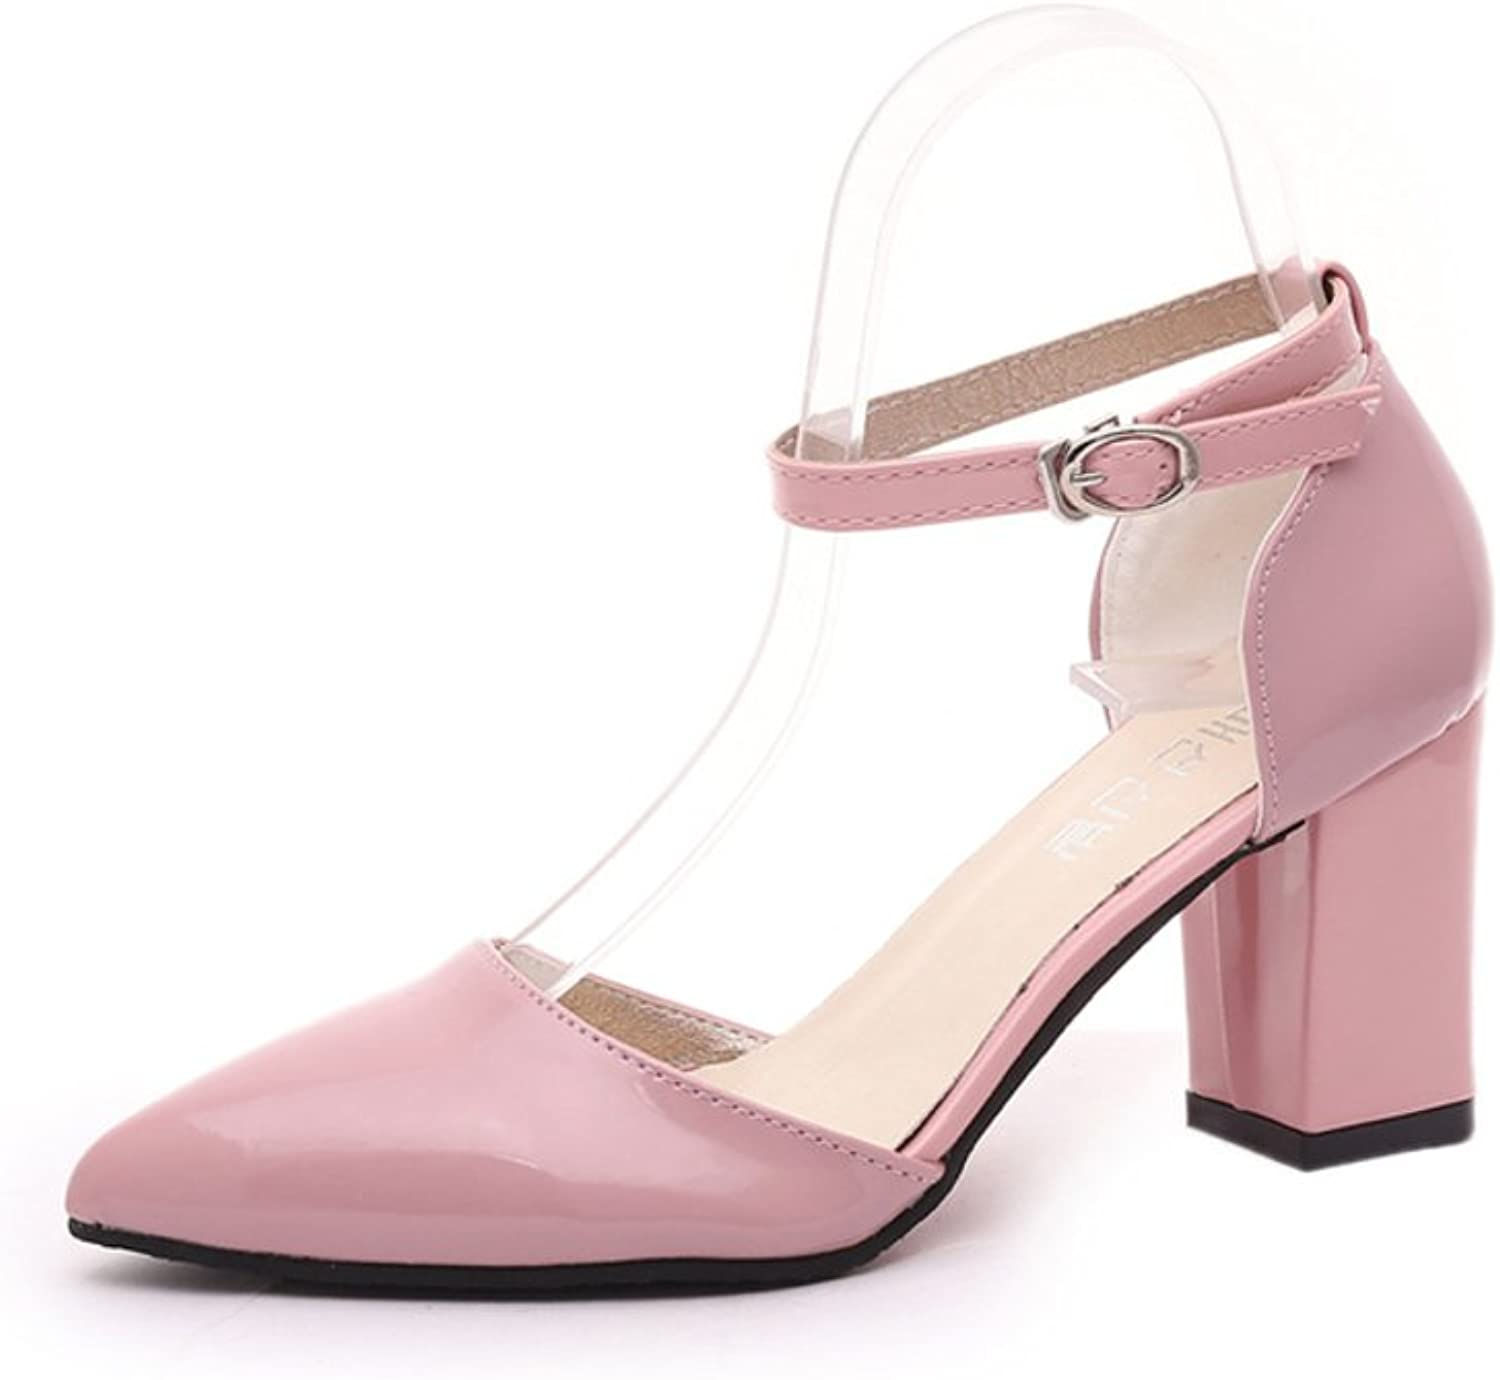 Huhuj Spring and summer wild pointed a buckle with a lateral heel shoes chunky heel sandals